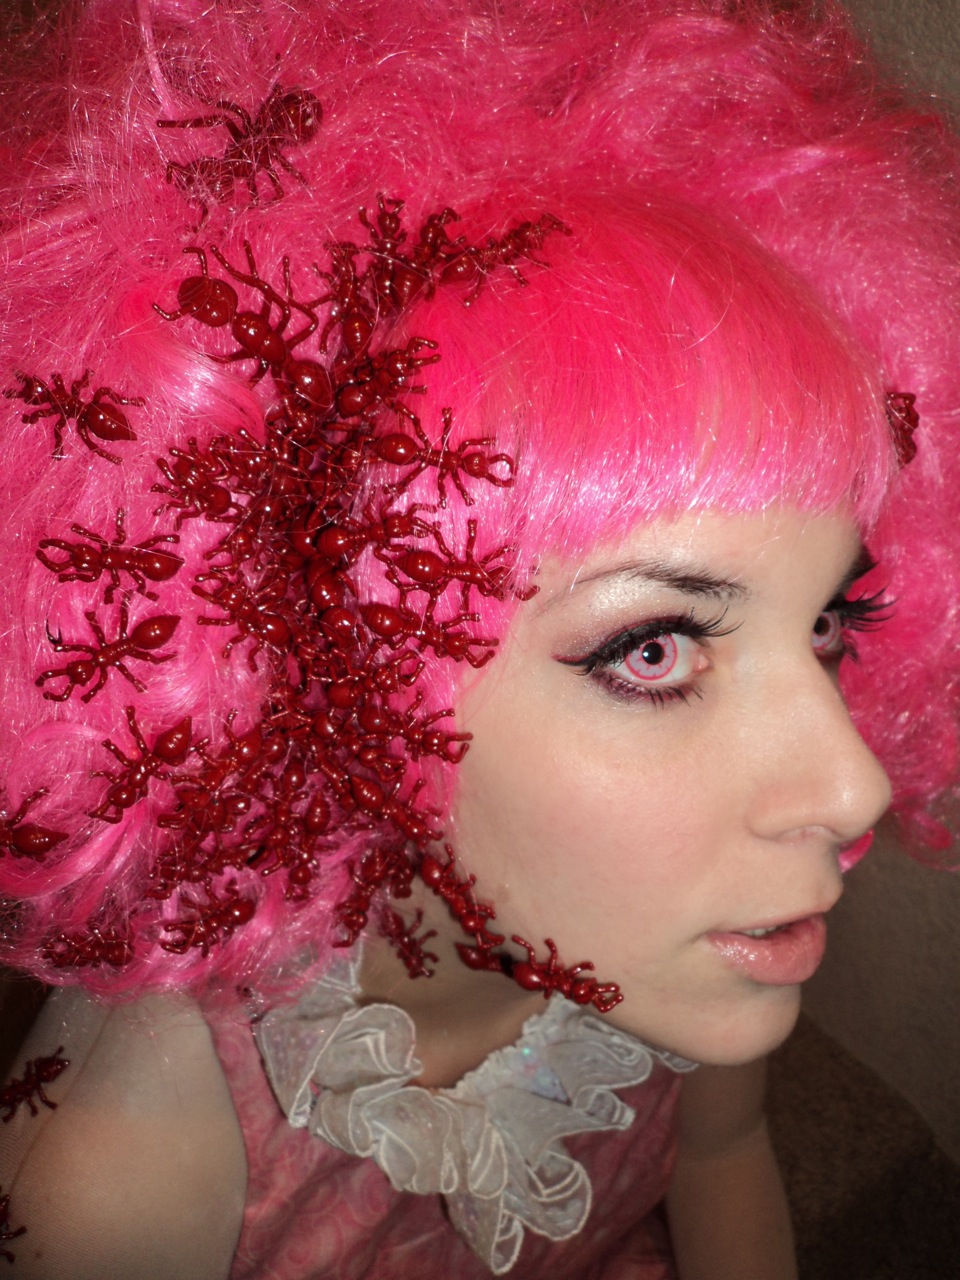 Cheerleaders Sport World: Funky Pink Hair Style - Cheerleader Hairstyles